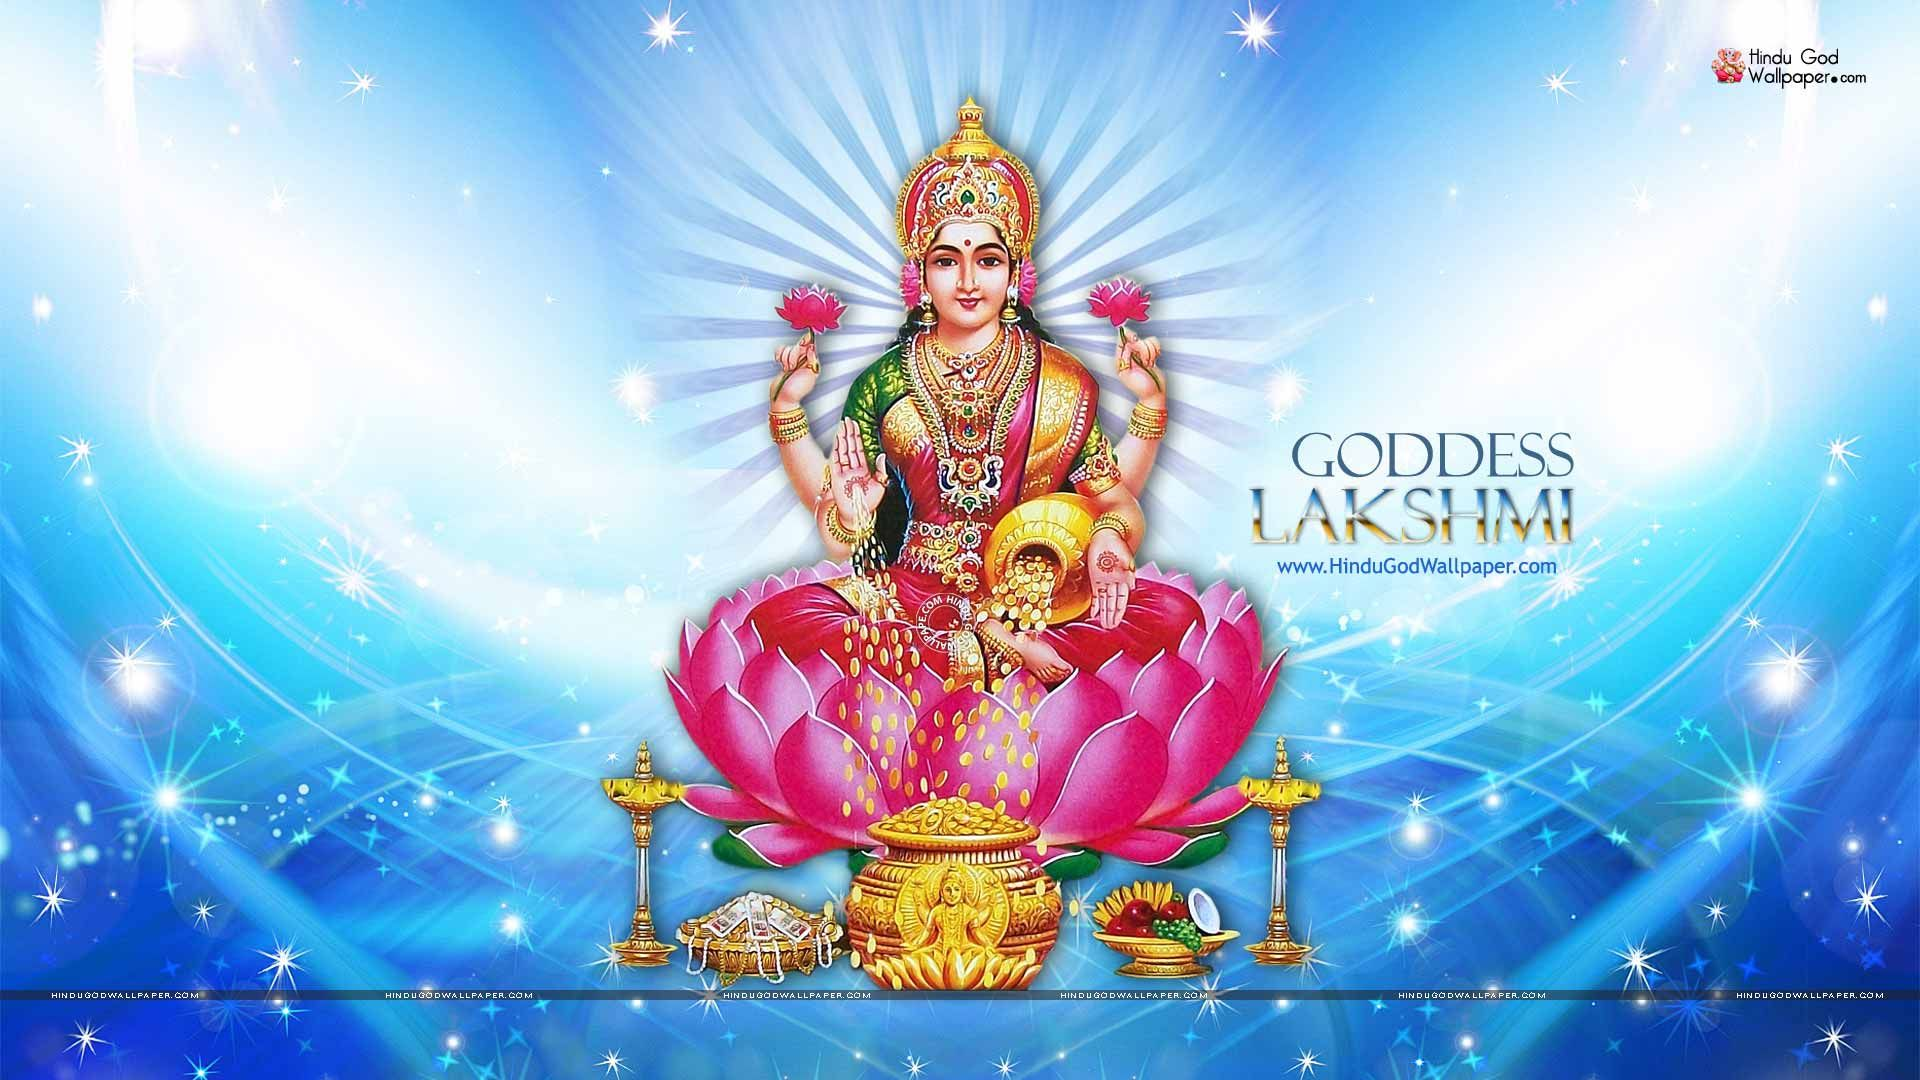 god lakshmi images full hd wallpaper | wallpapers | pinterest